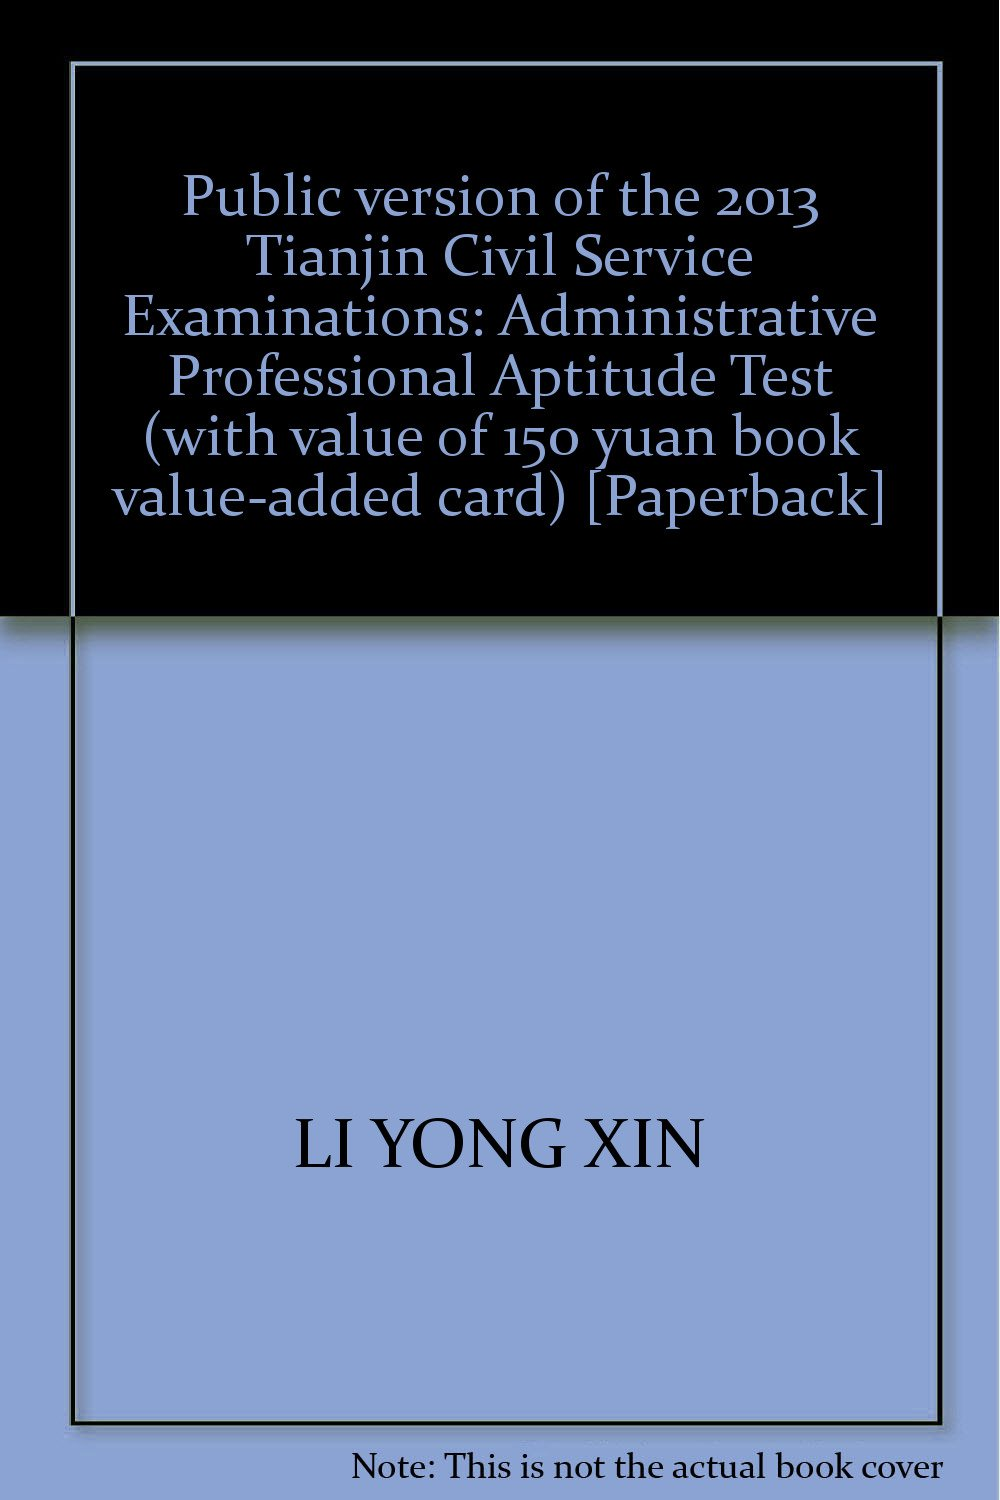 Download Public version of the 2013 Tianjin Civil Service Examinations: Administrative Professional Aptitude Test (with value of 150 yuan book value-added card) [Paperback] PDF